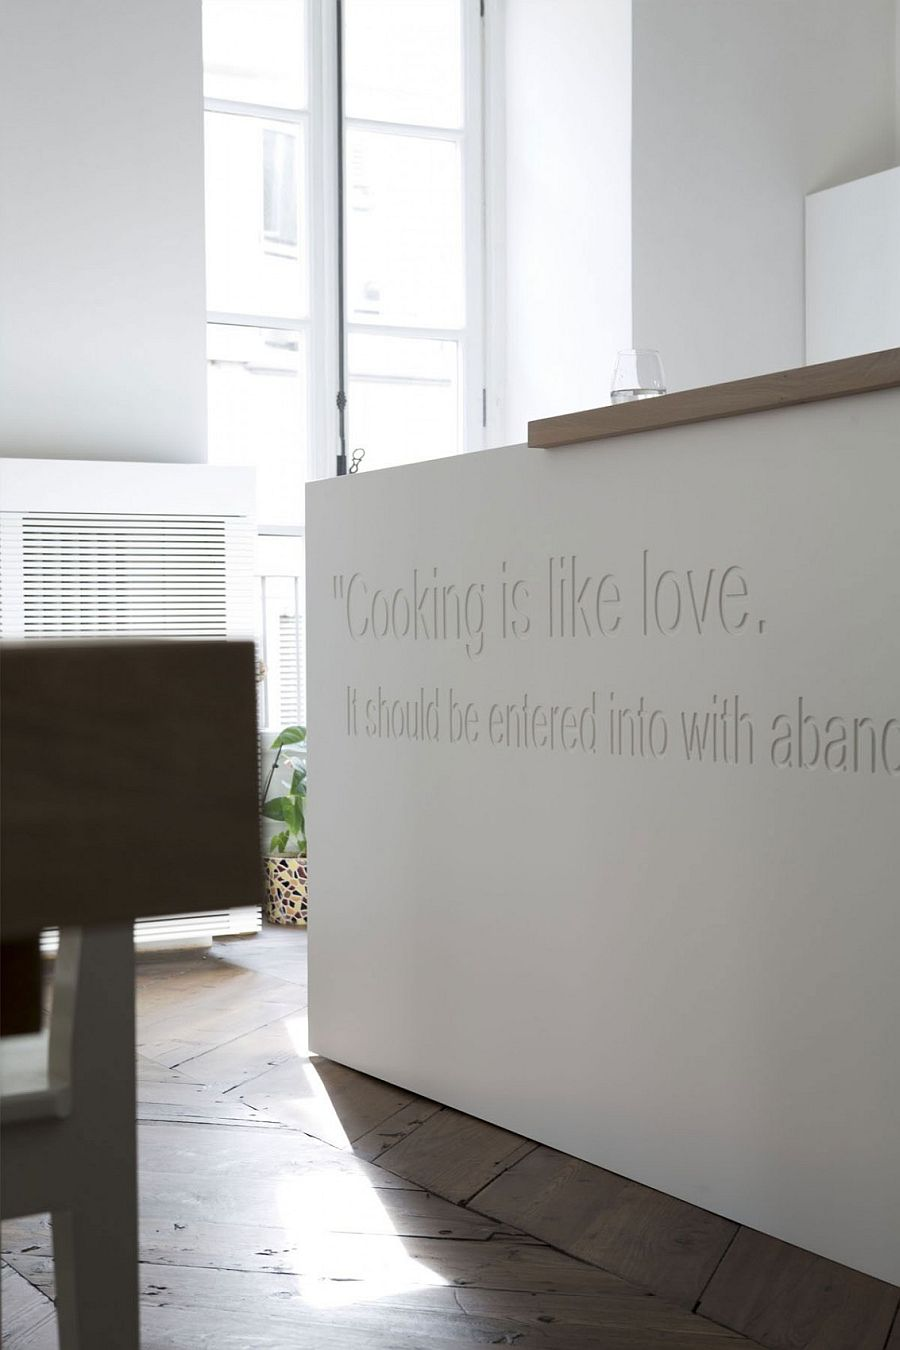 Italian Kitchen island with an etched message